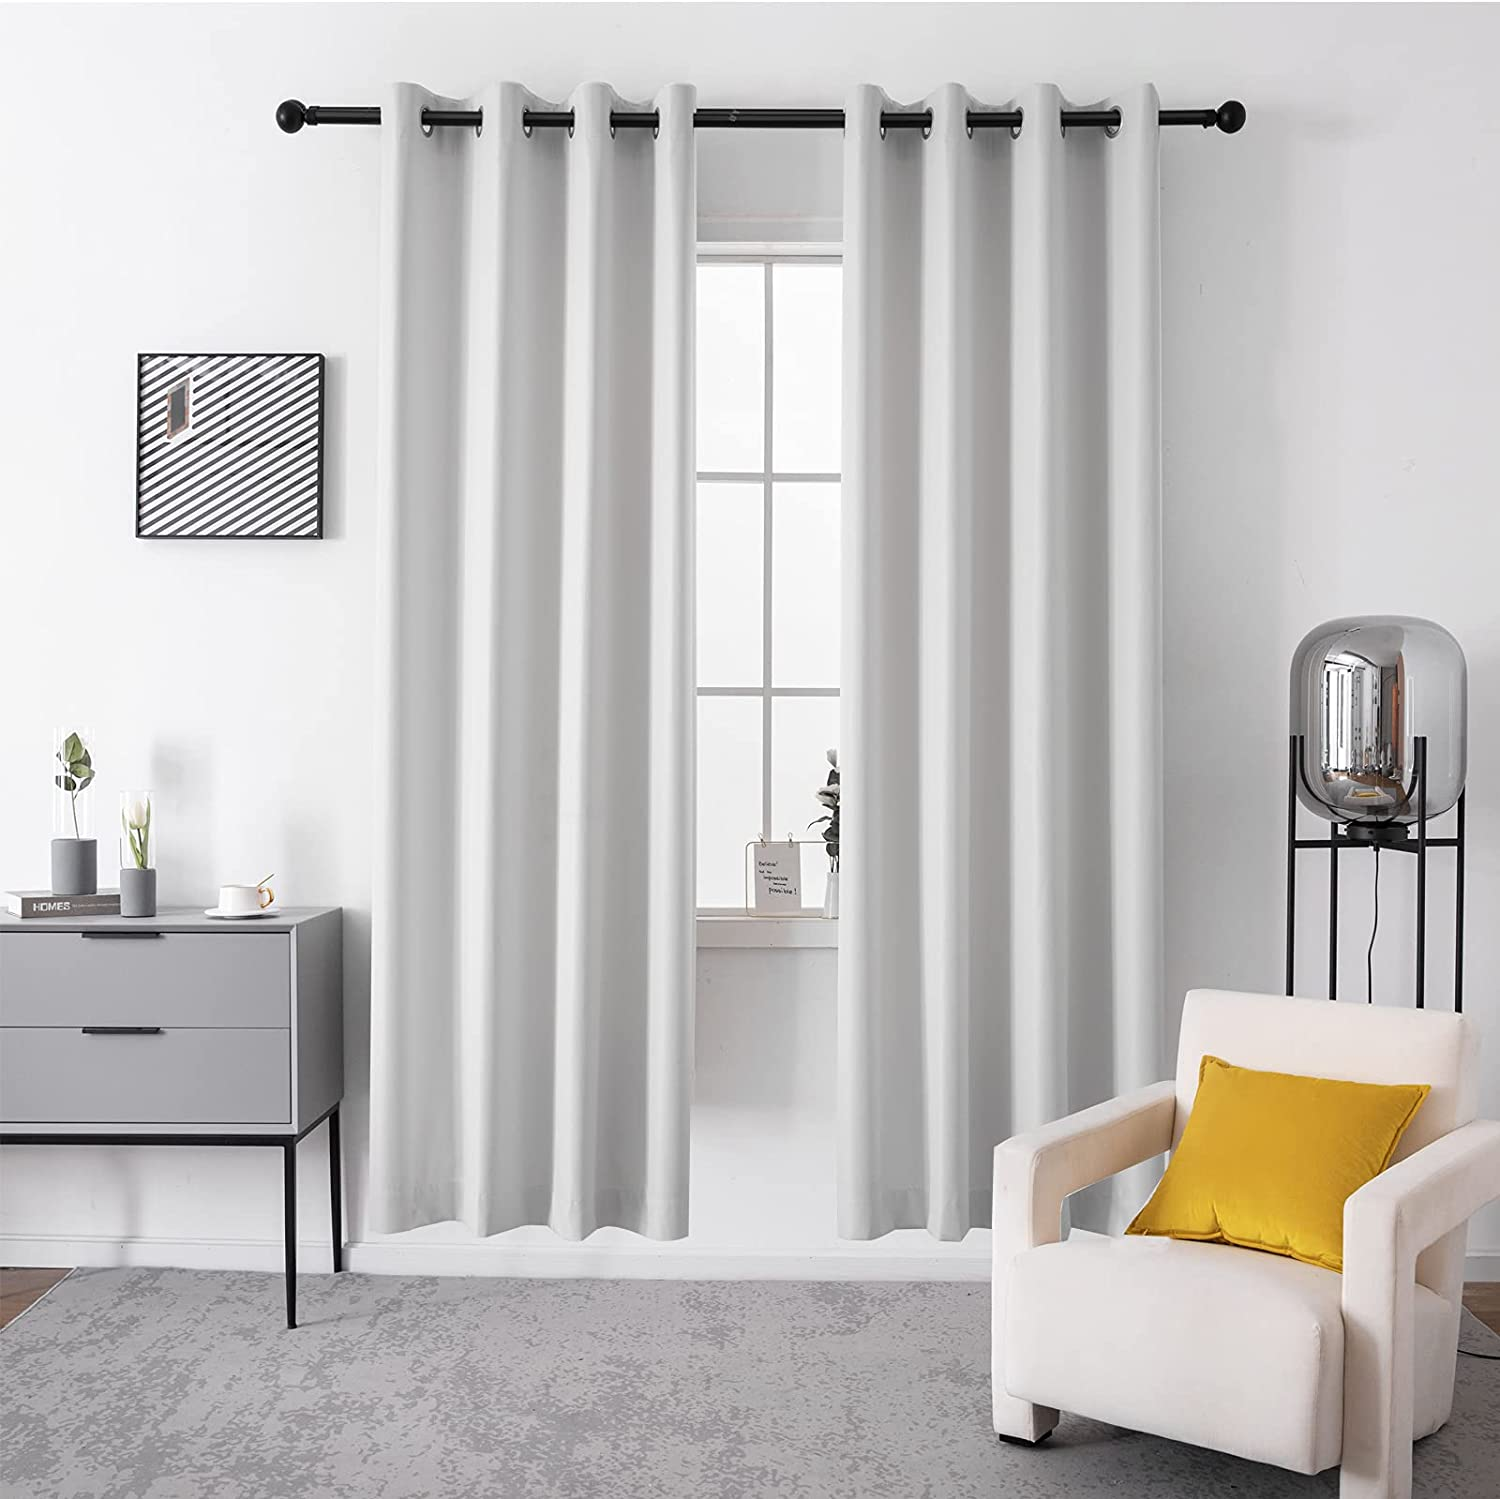 PERLAW Blackout Curtains for Insulated Portland Mall Thermal Japan's largest assortment Living Room